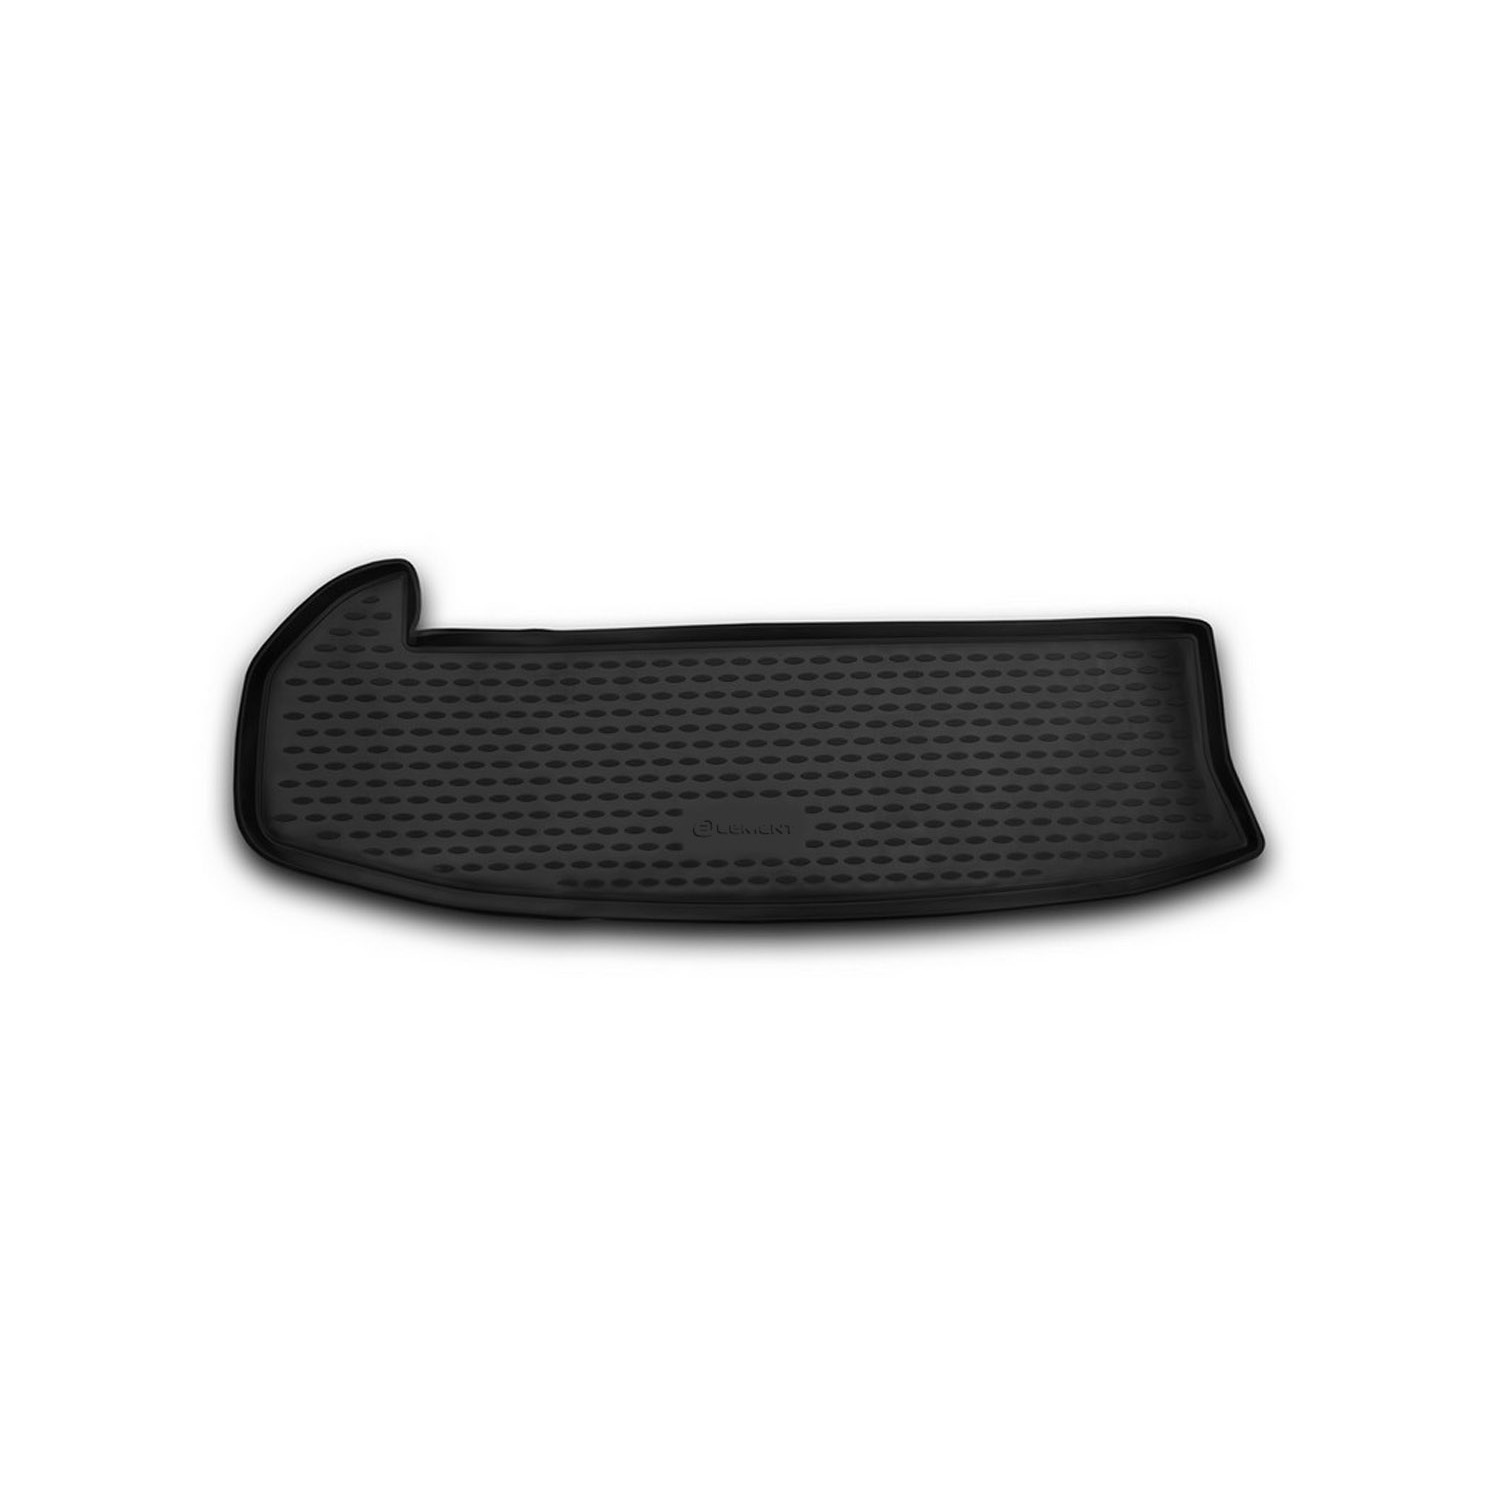 Trunk Mat For TOYOTA Highlander 2014-2016, 2016, Implement. CTN. 1 PCs CARTYT00018